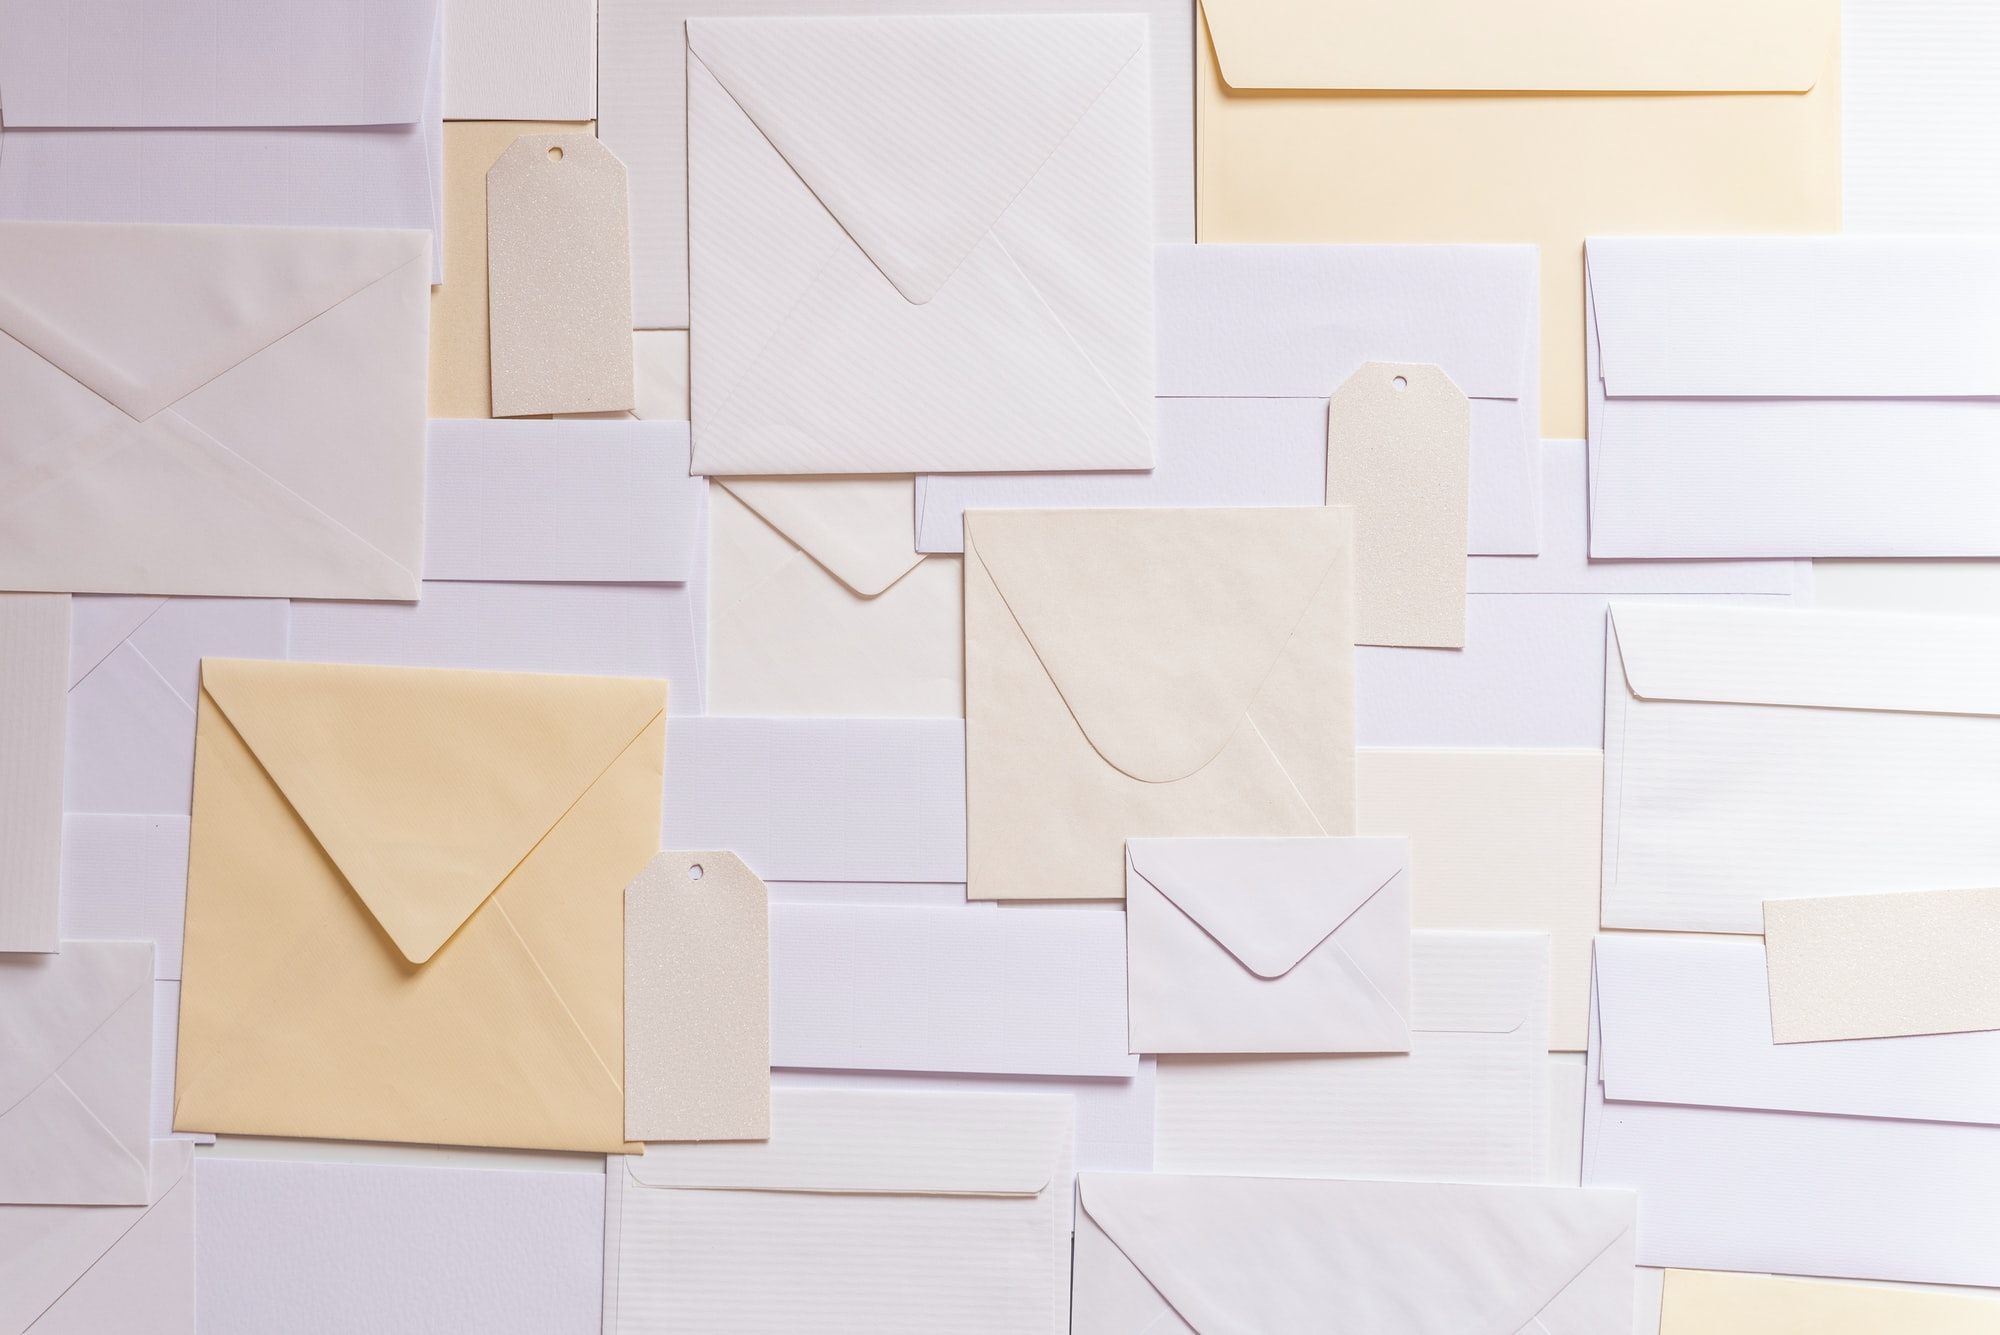 Top 15 Self-hosted open-source free webmail clients